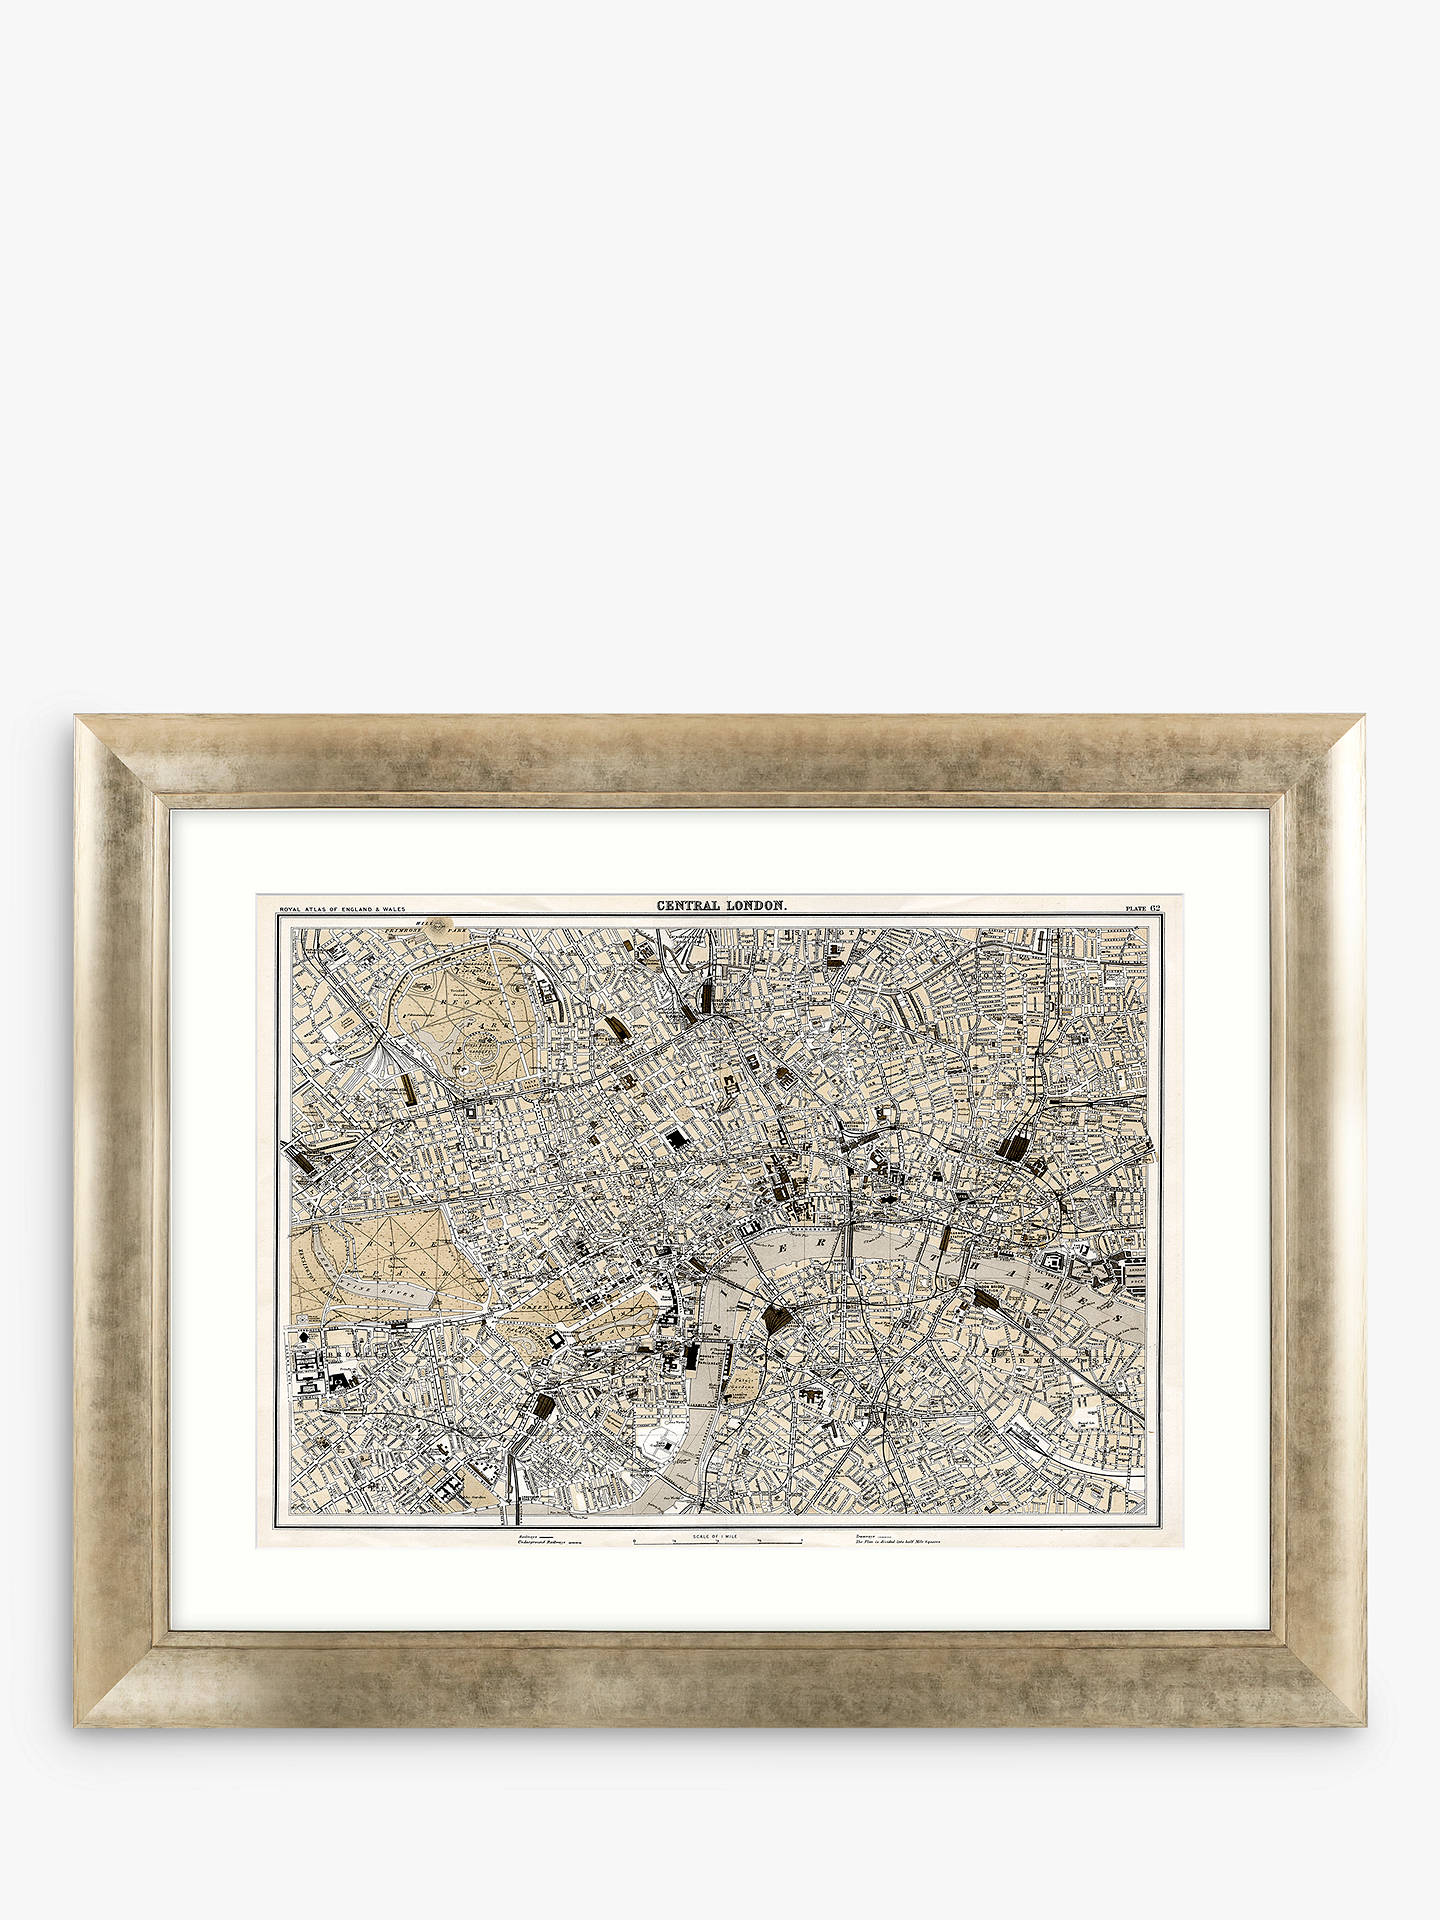 Map Of Central London To Print.John Lewis Partners Central London Antique Map Framed Print Mount 73 X 93cm Multi